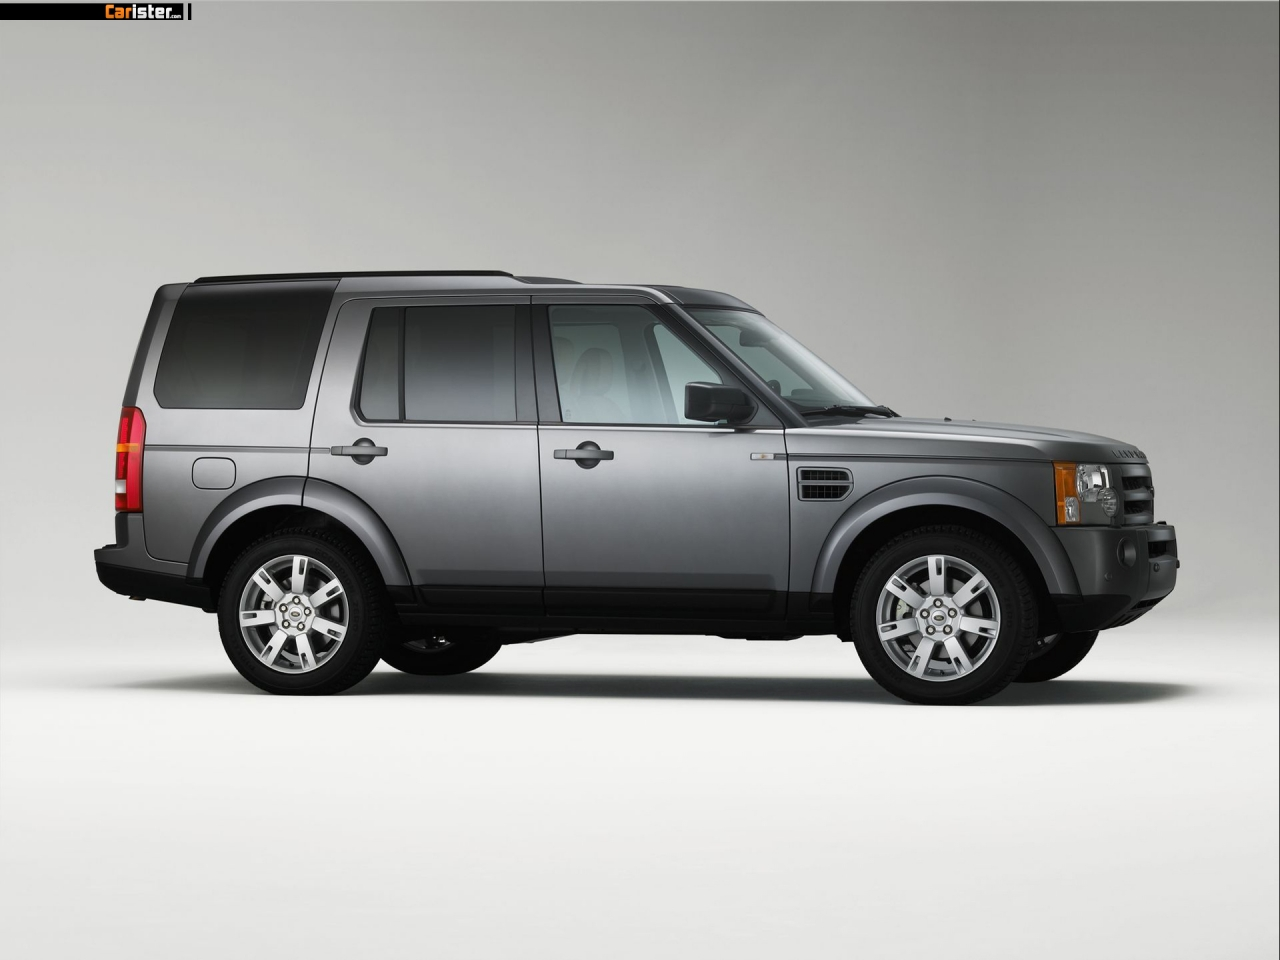 Land Rover Discovery 3 2009 - Photo 16 - Taille: 1280x960